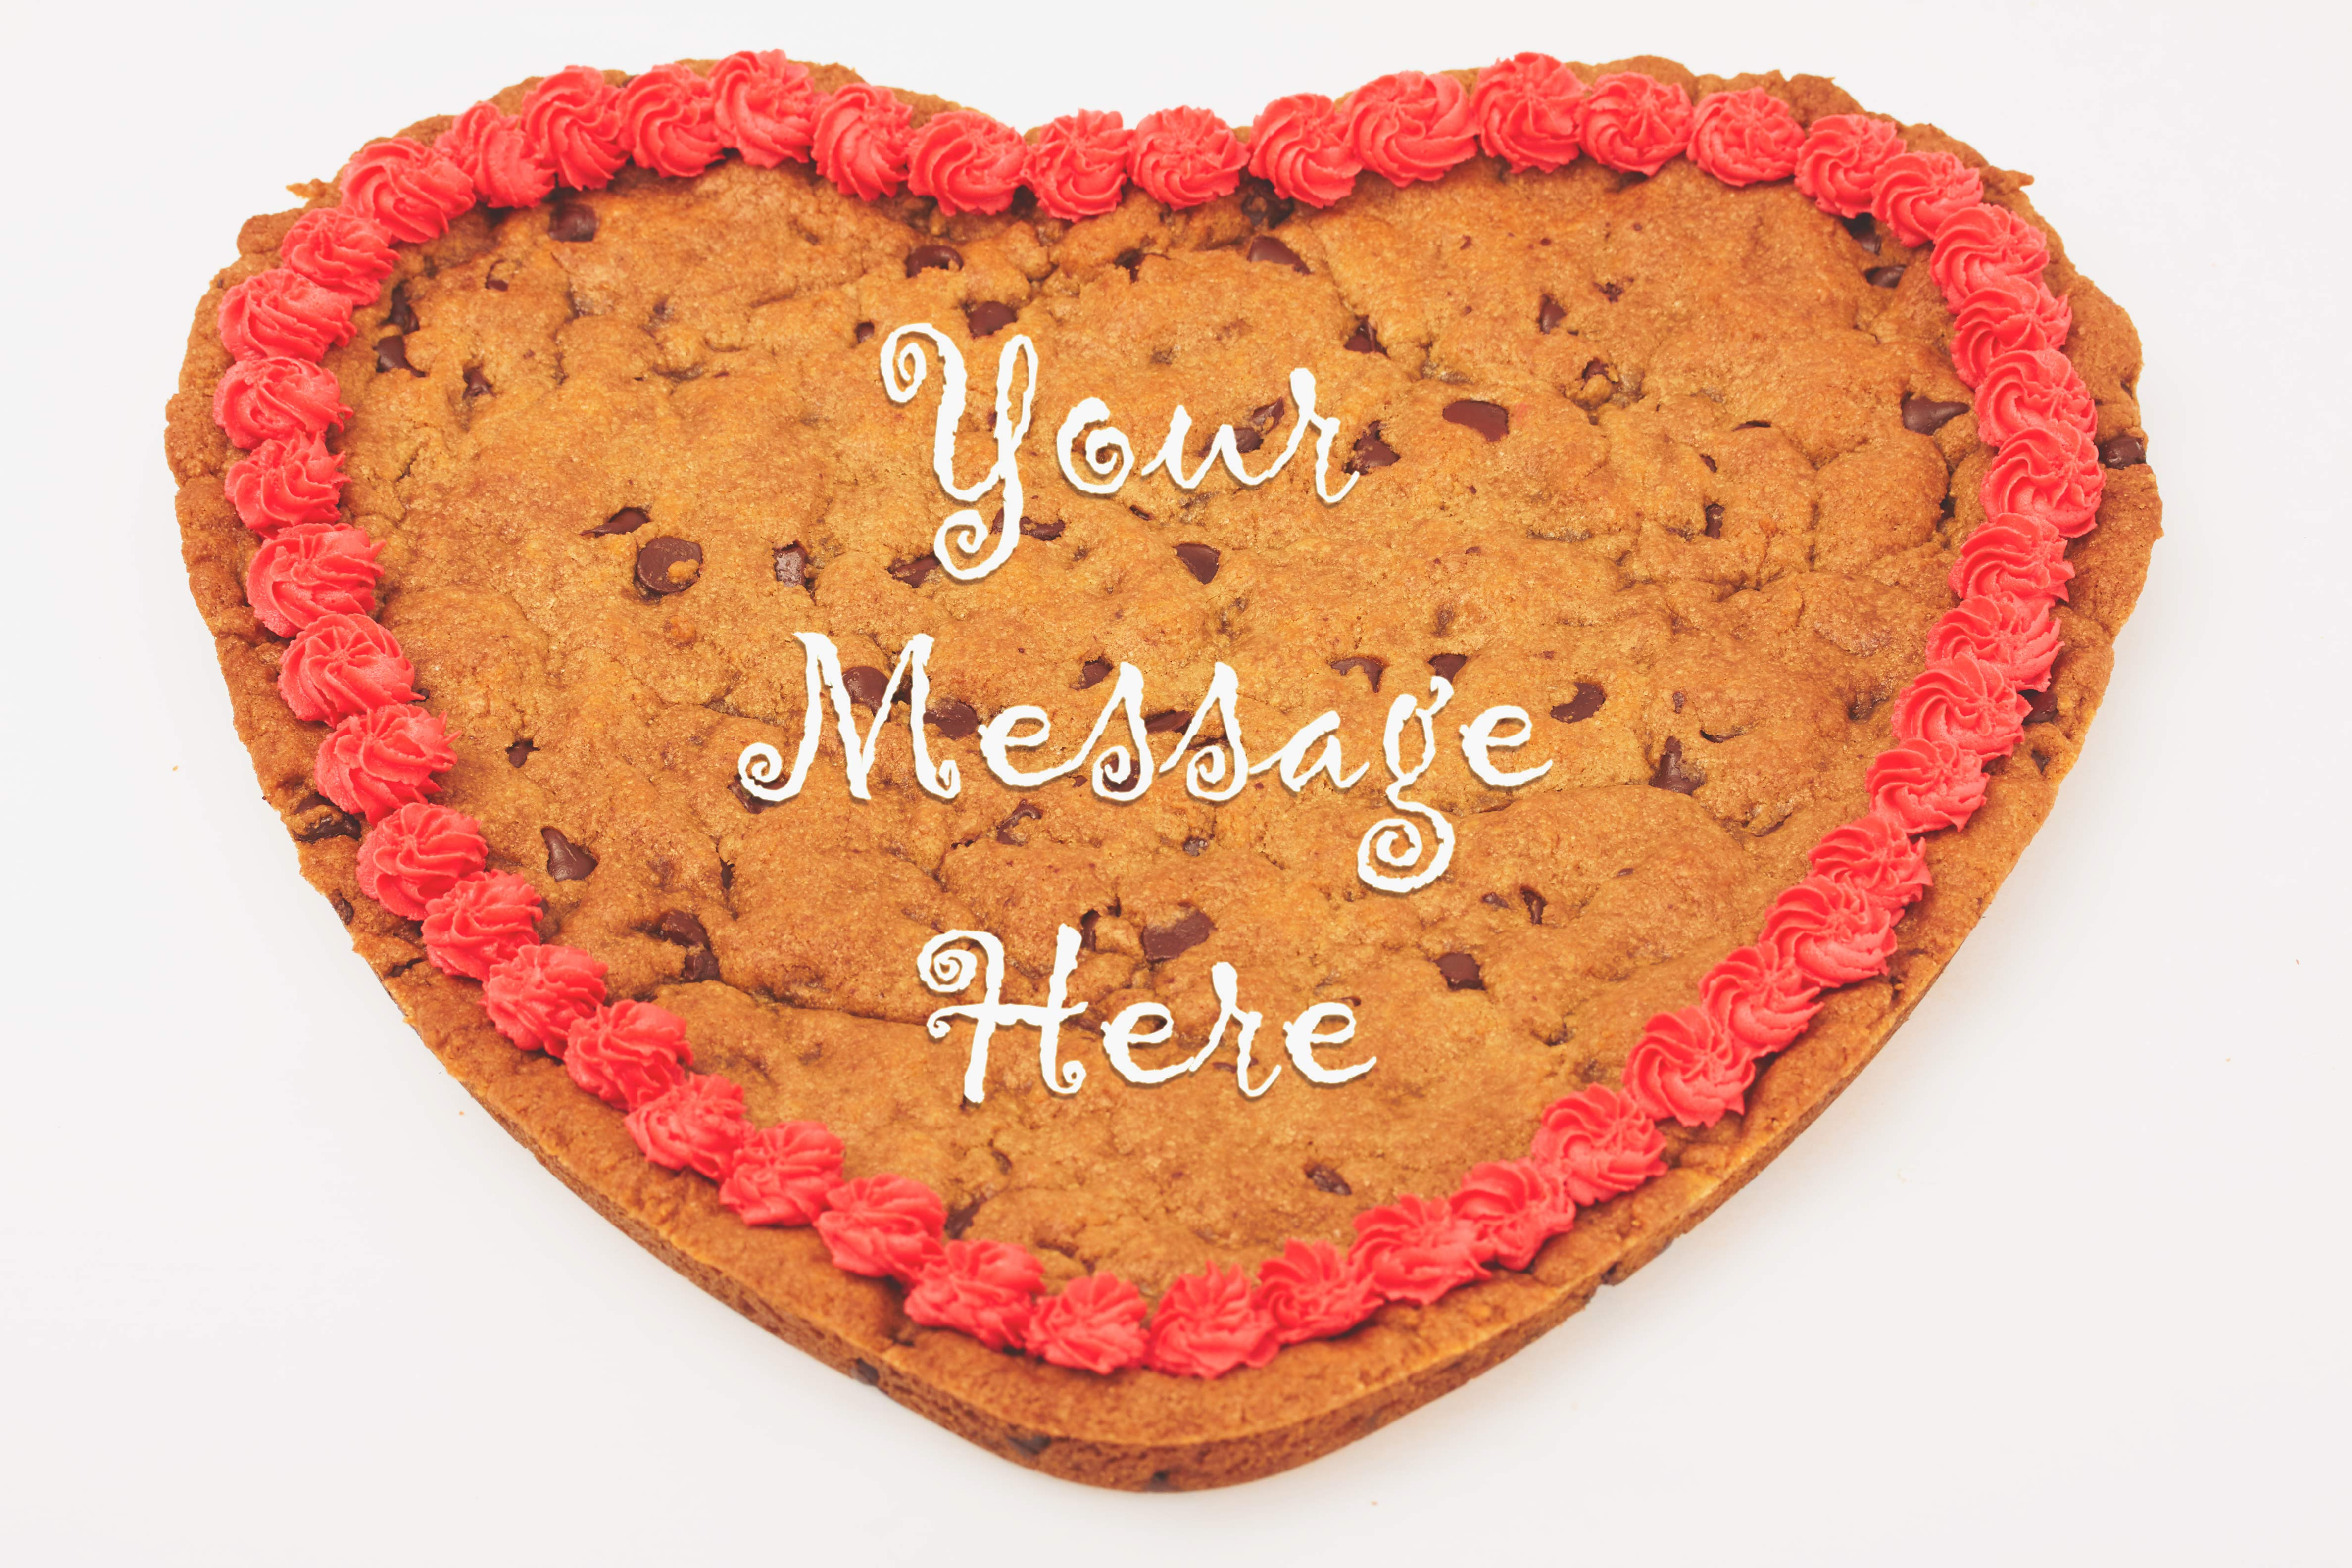 Our giant cookie grams are made from the heart!